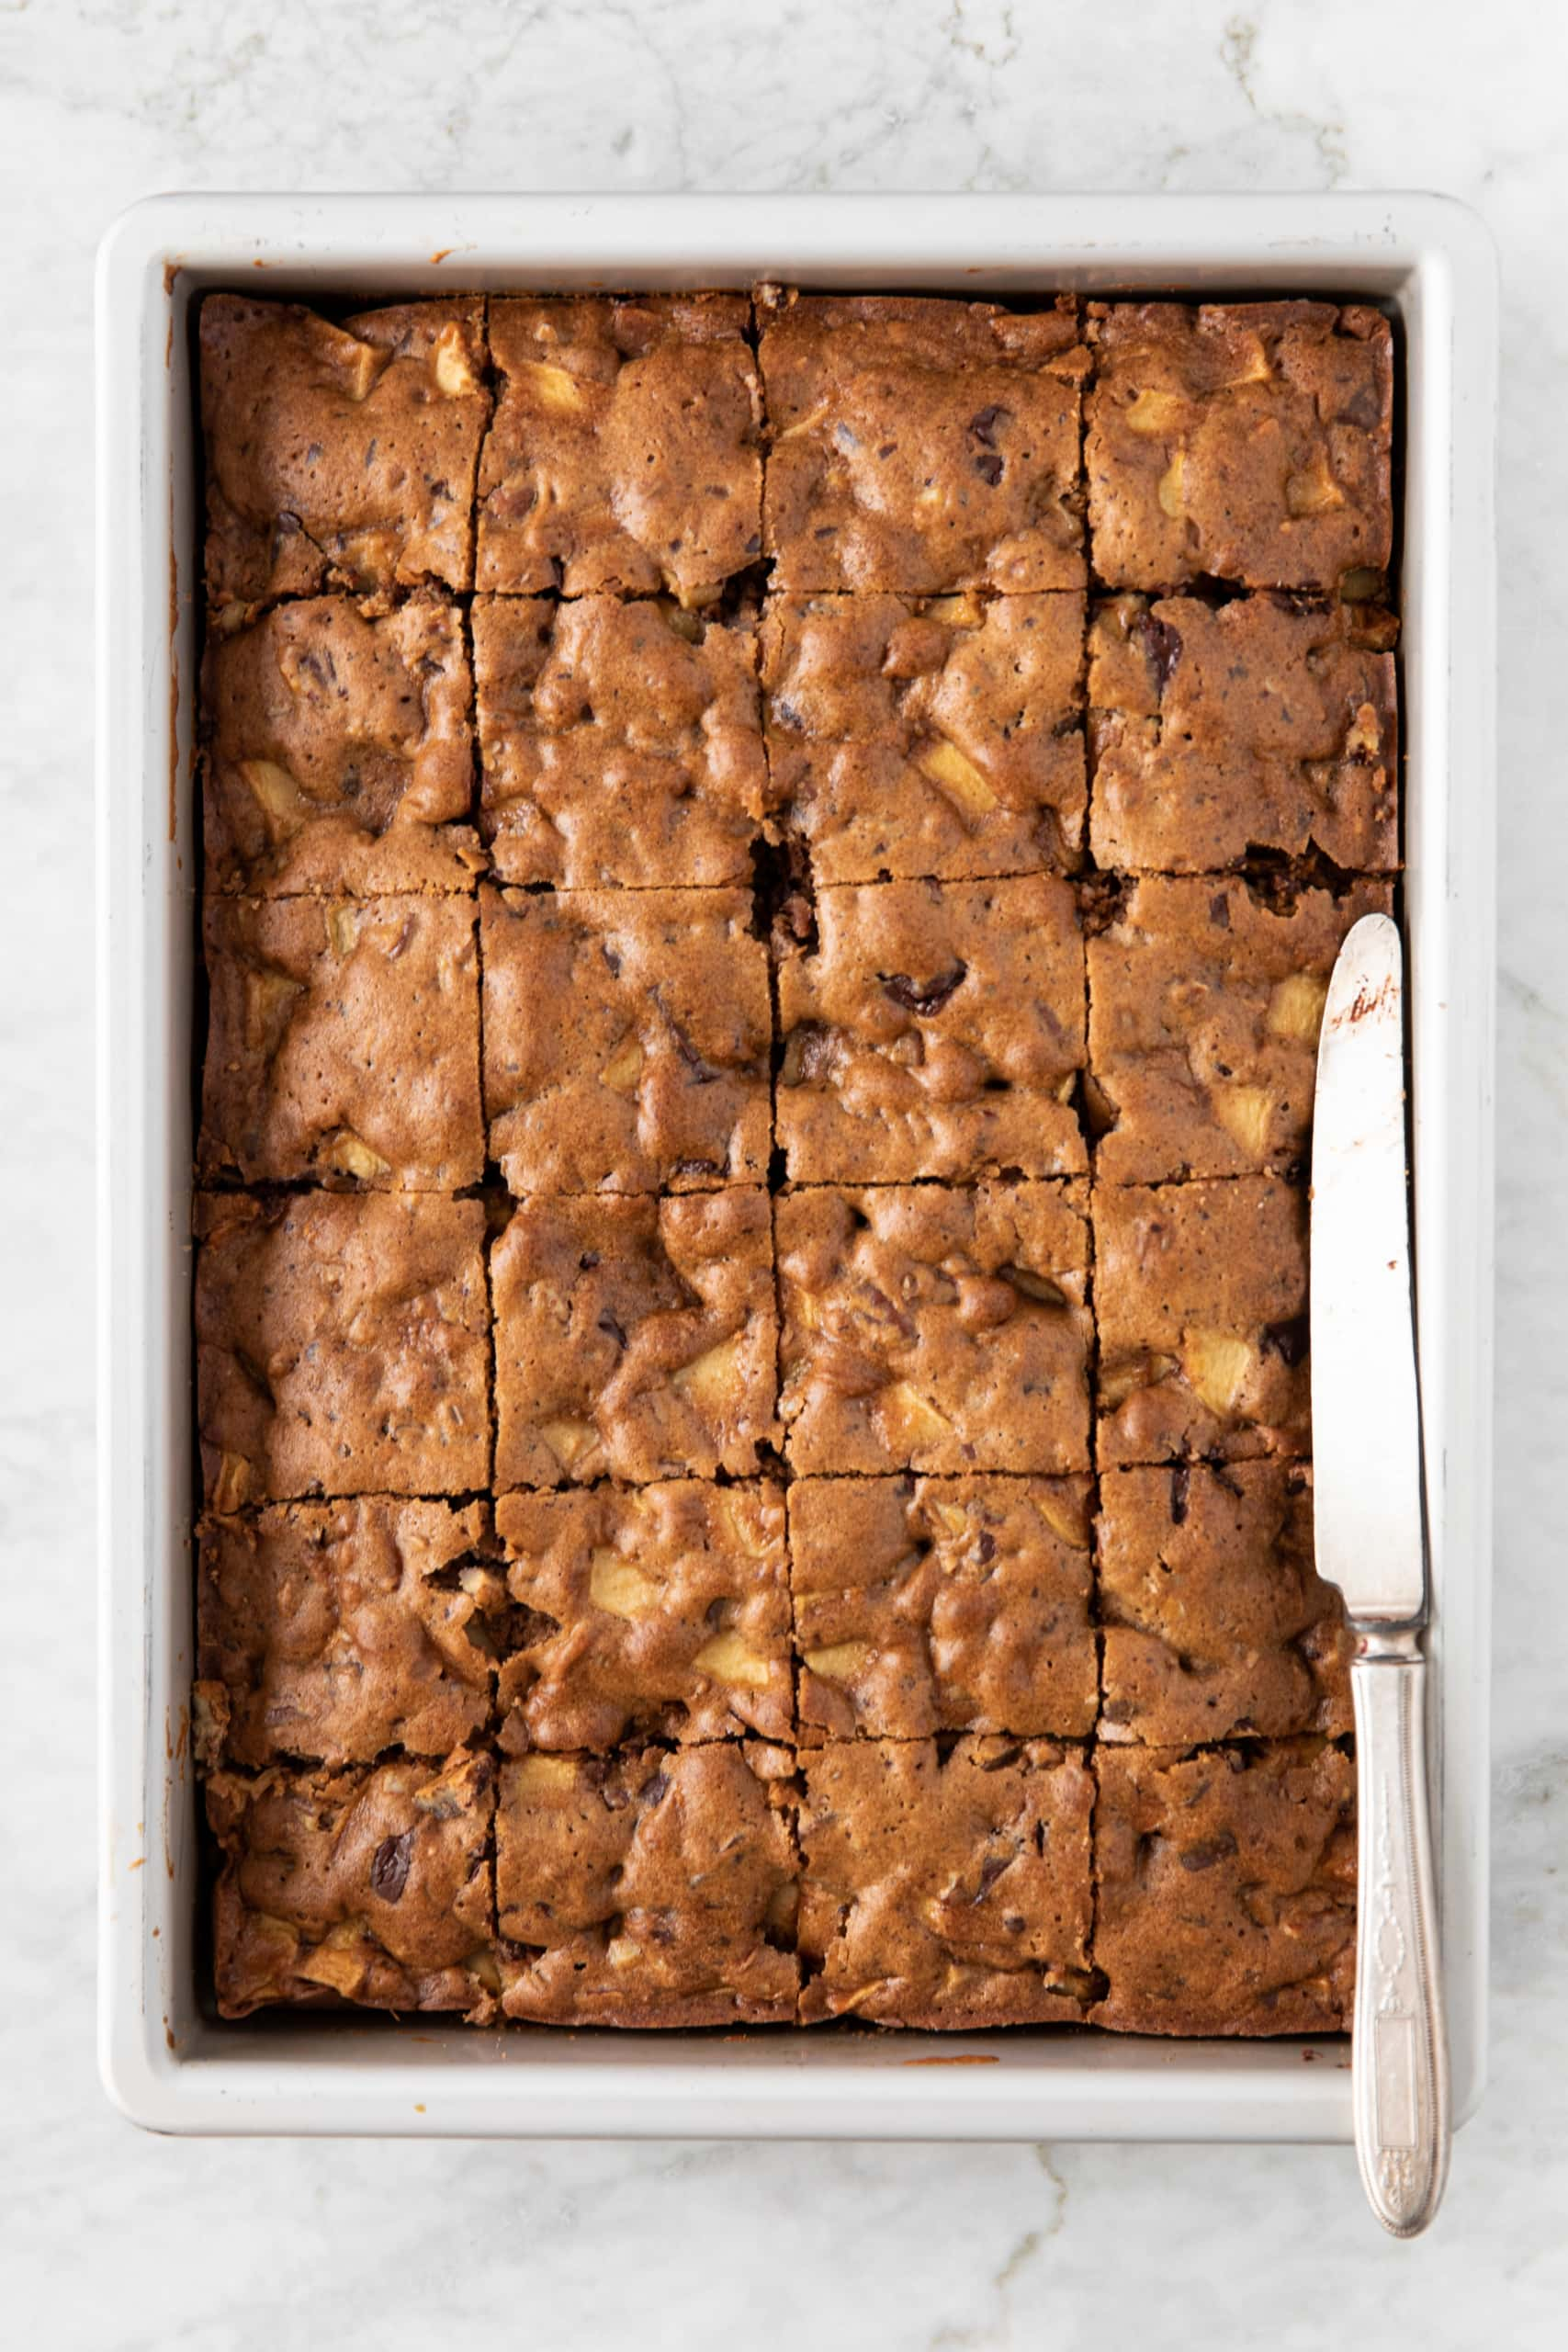 Baking pan with Apple Pecan Chocolate Coffee Cake, cut into slices | from verygoodcook.com